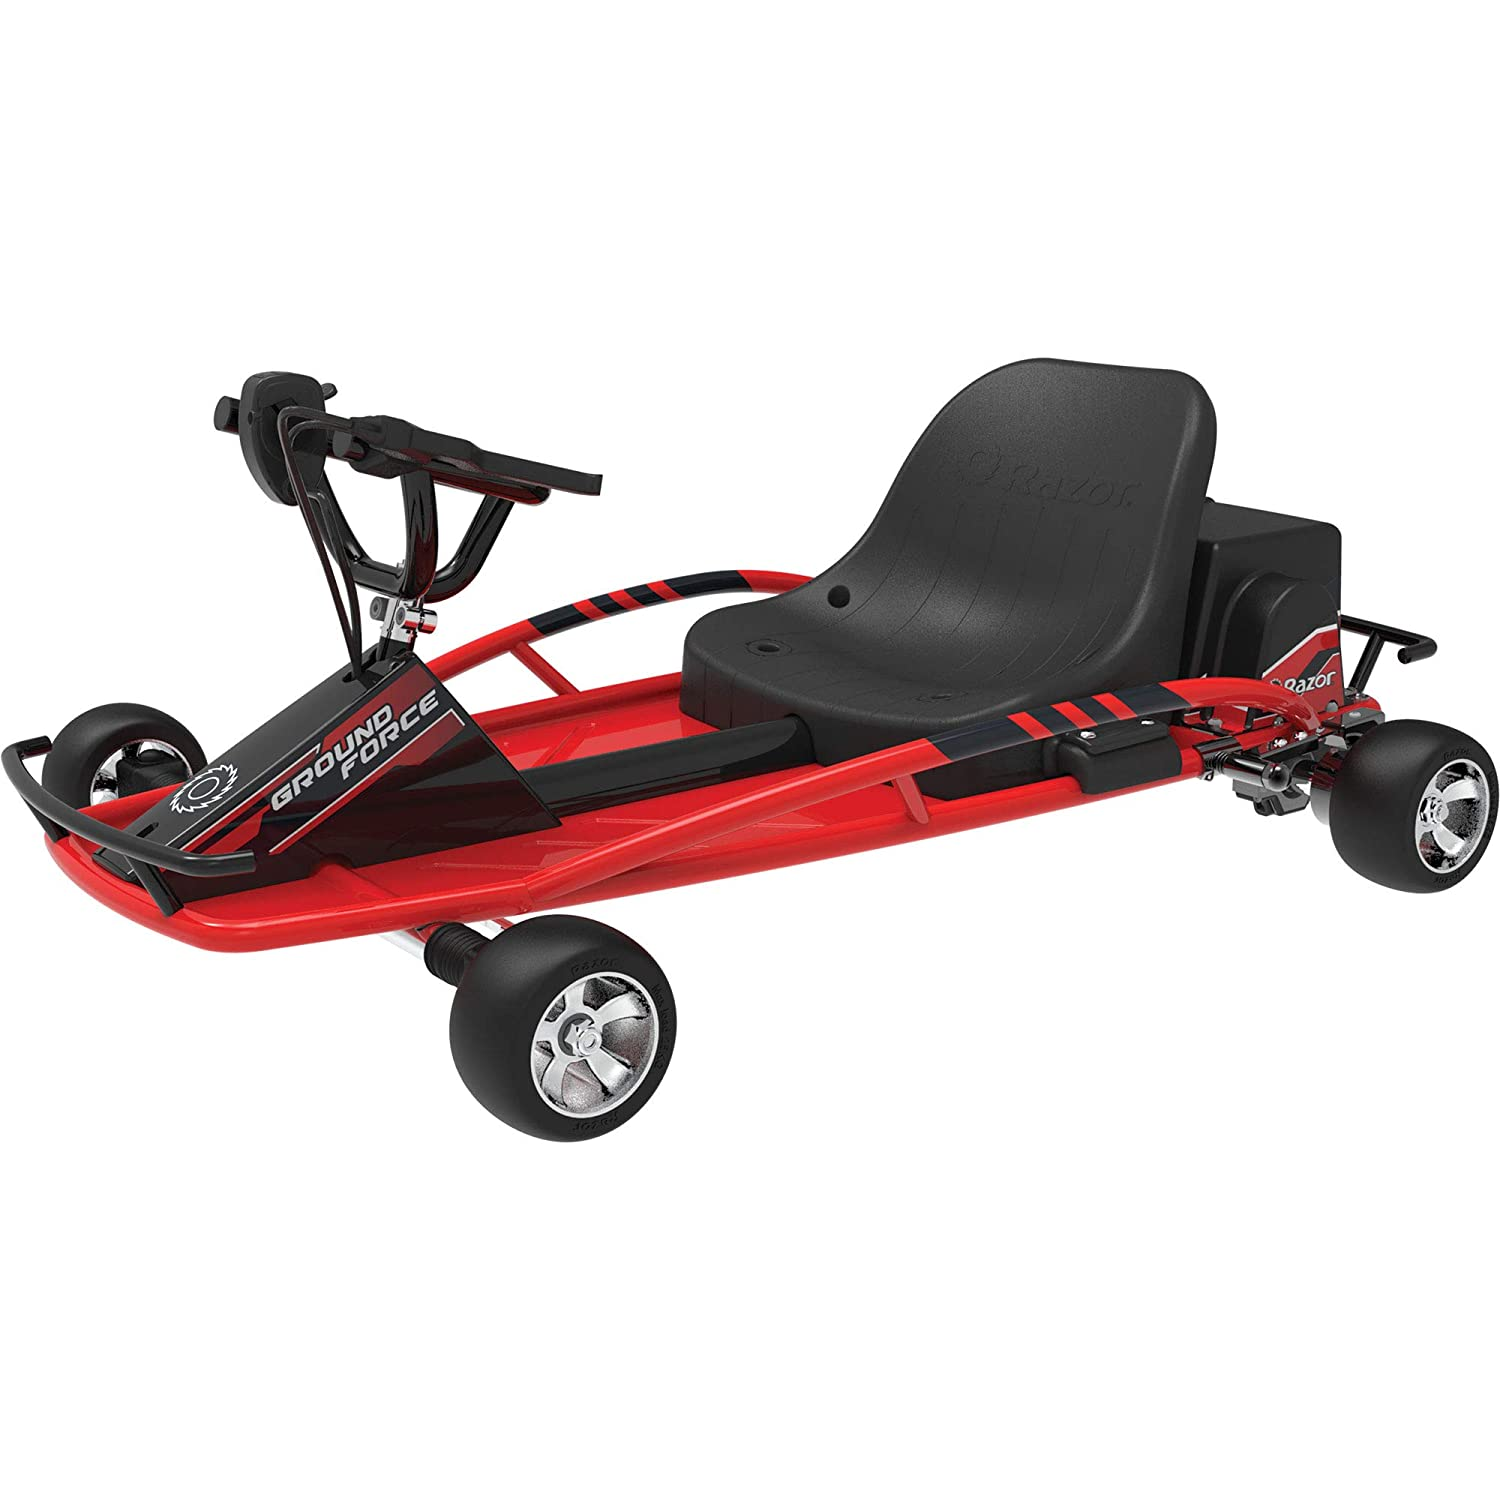 Amazon.com : Razor Ground Force Drifter 24V Rechargeable Electric Go Kart,  up to 12 MPH, Red : Sports & Outdoors